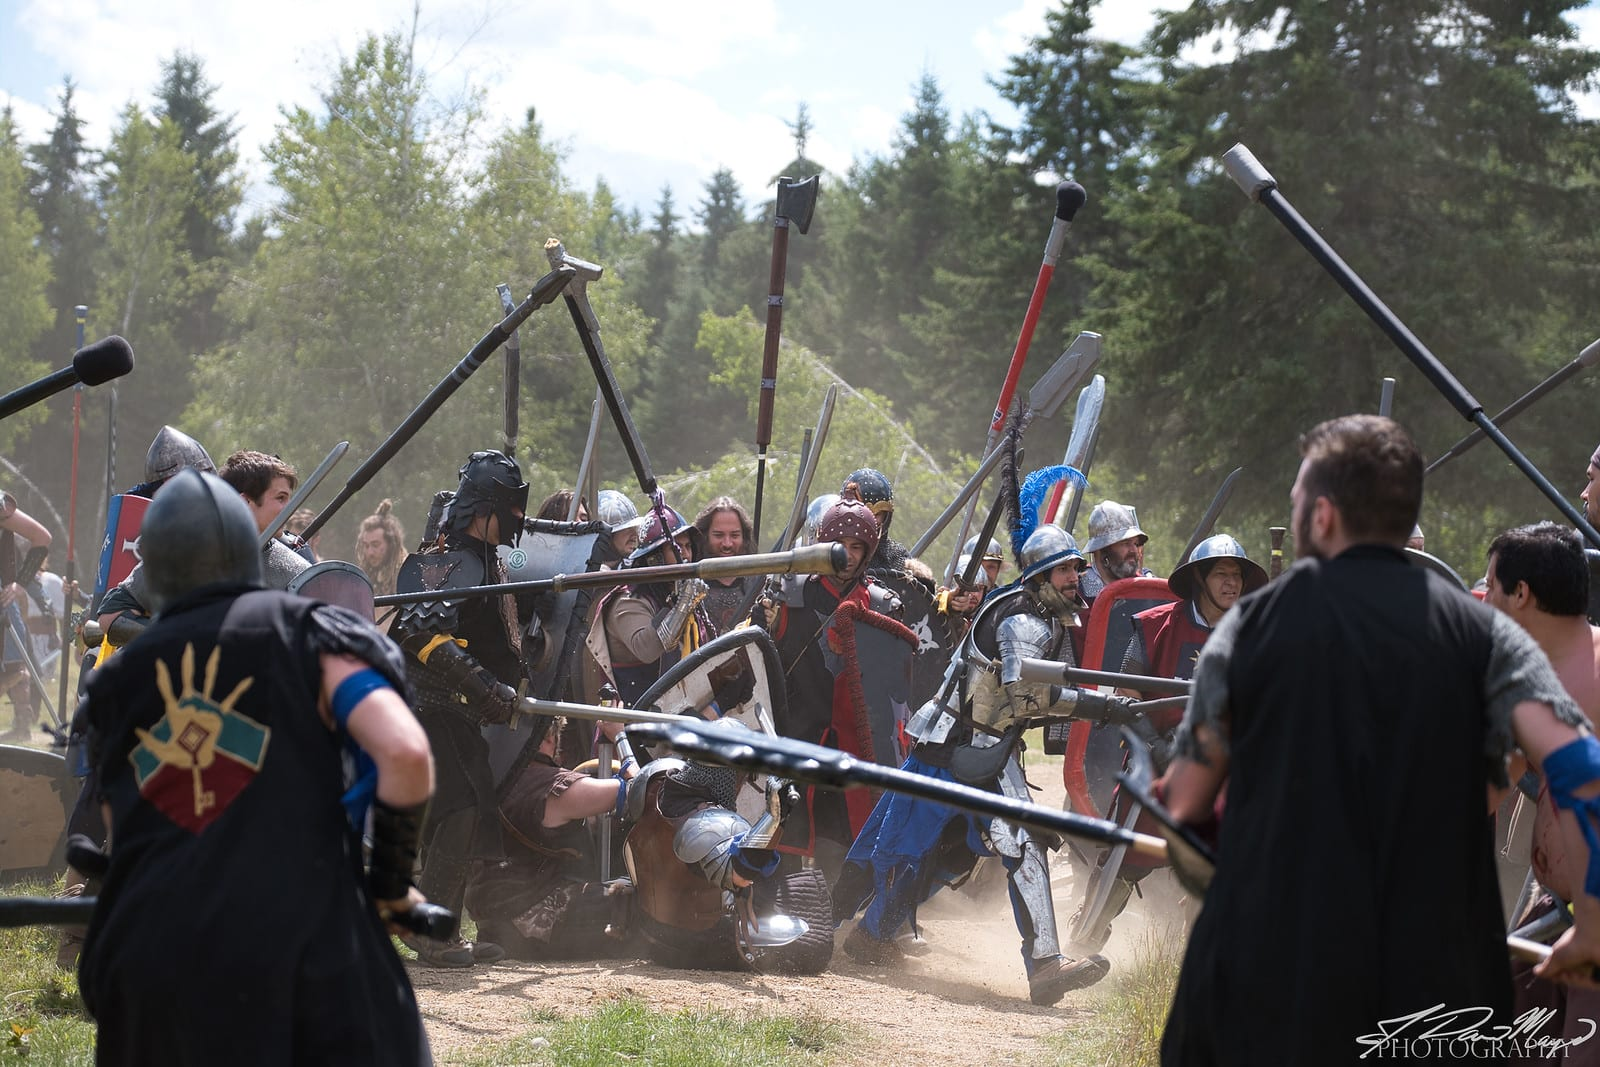 Larp Pictures And Videos To Finish Off Your Week